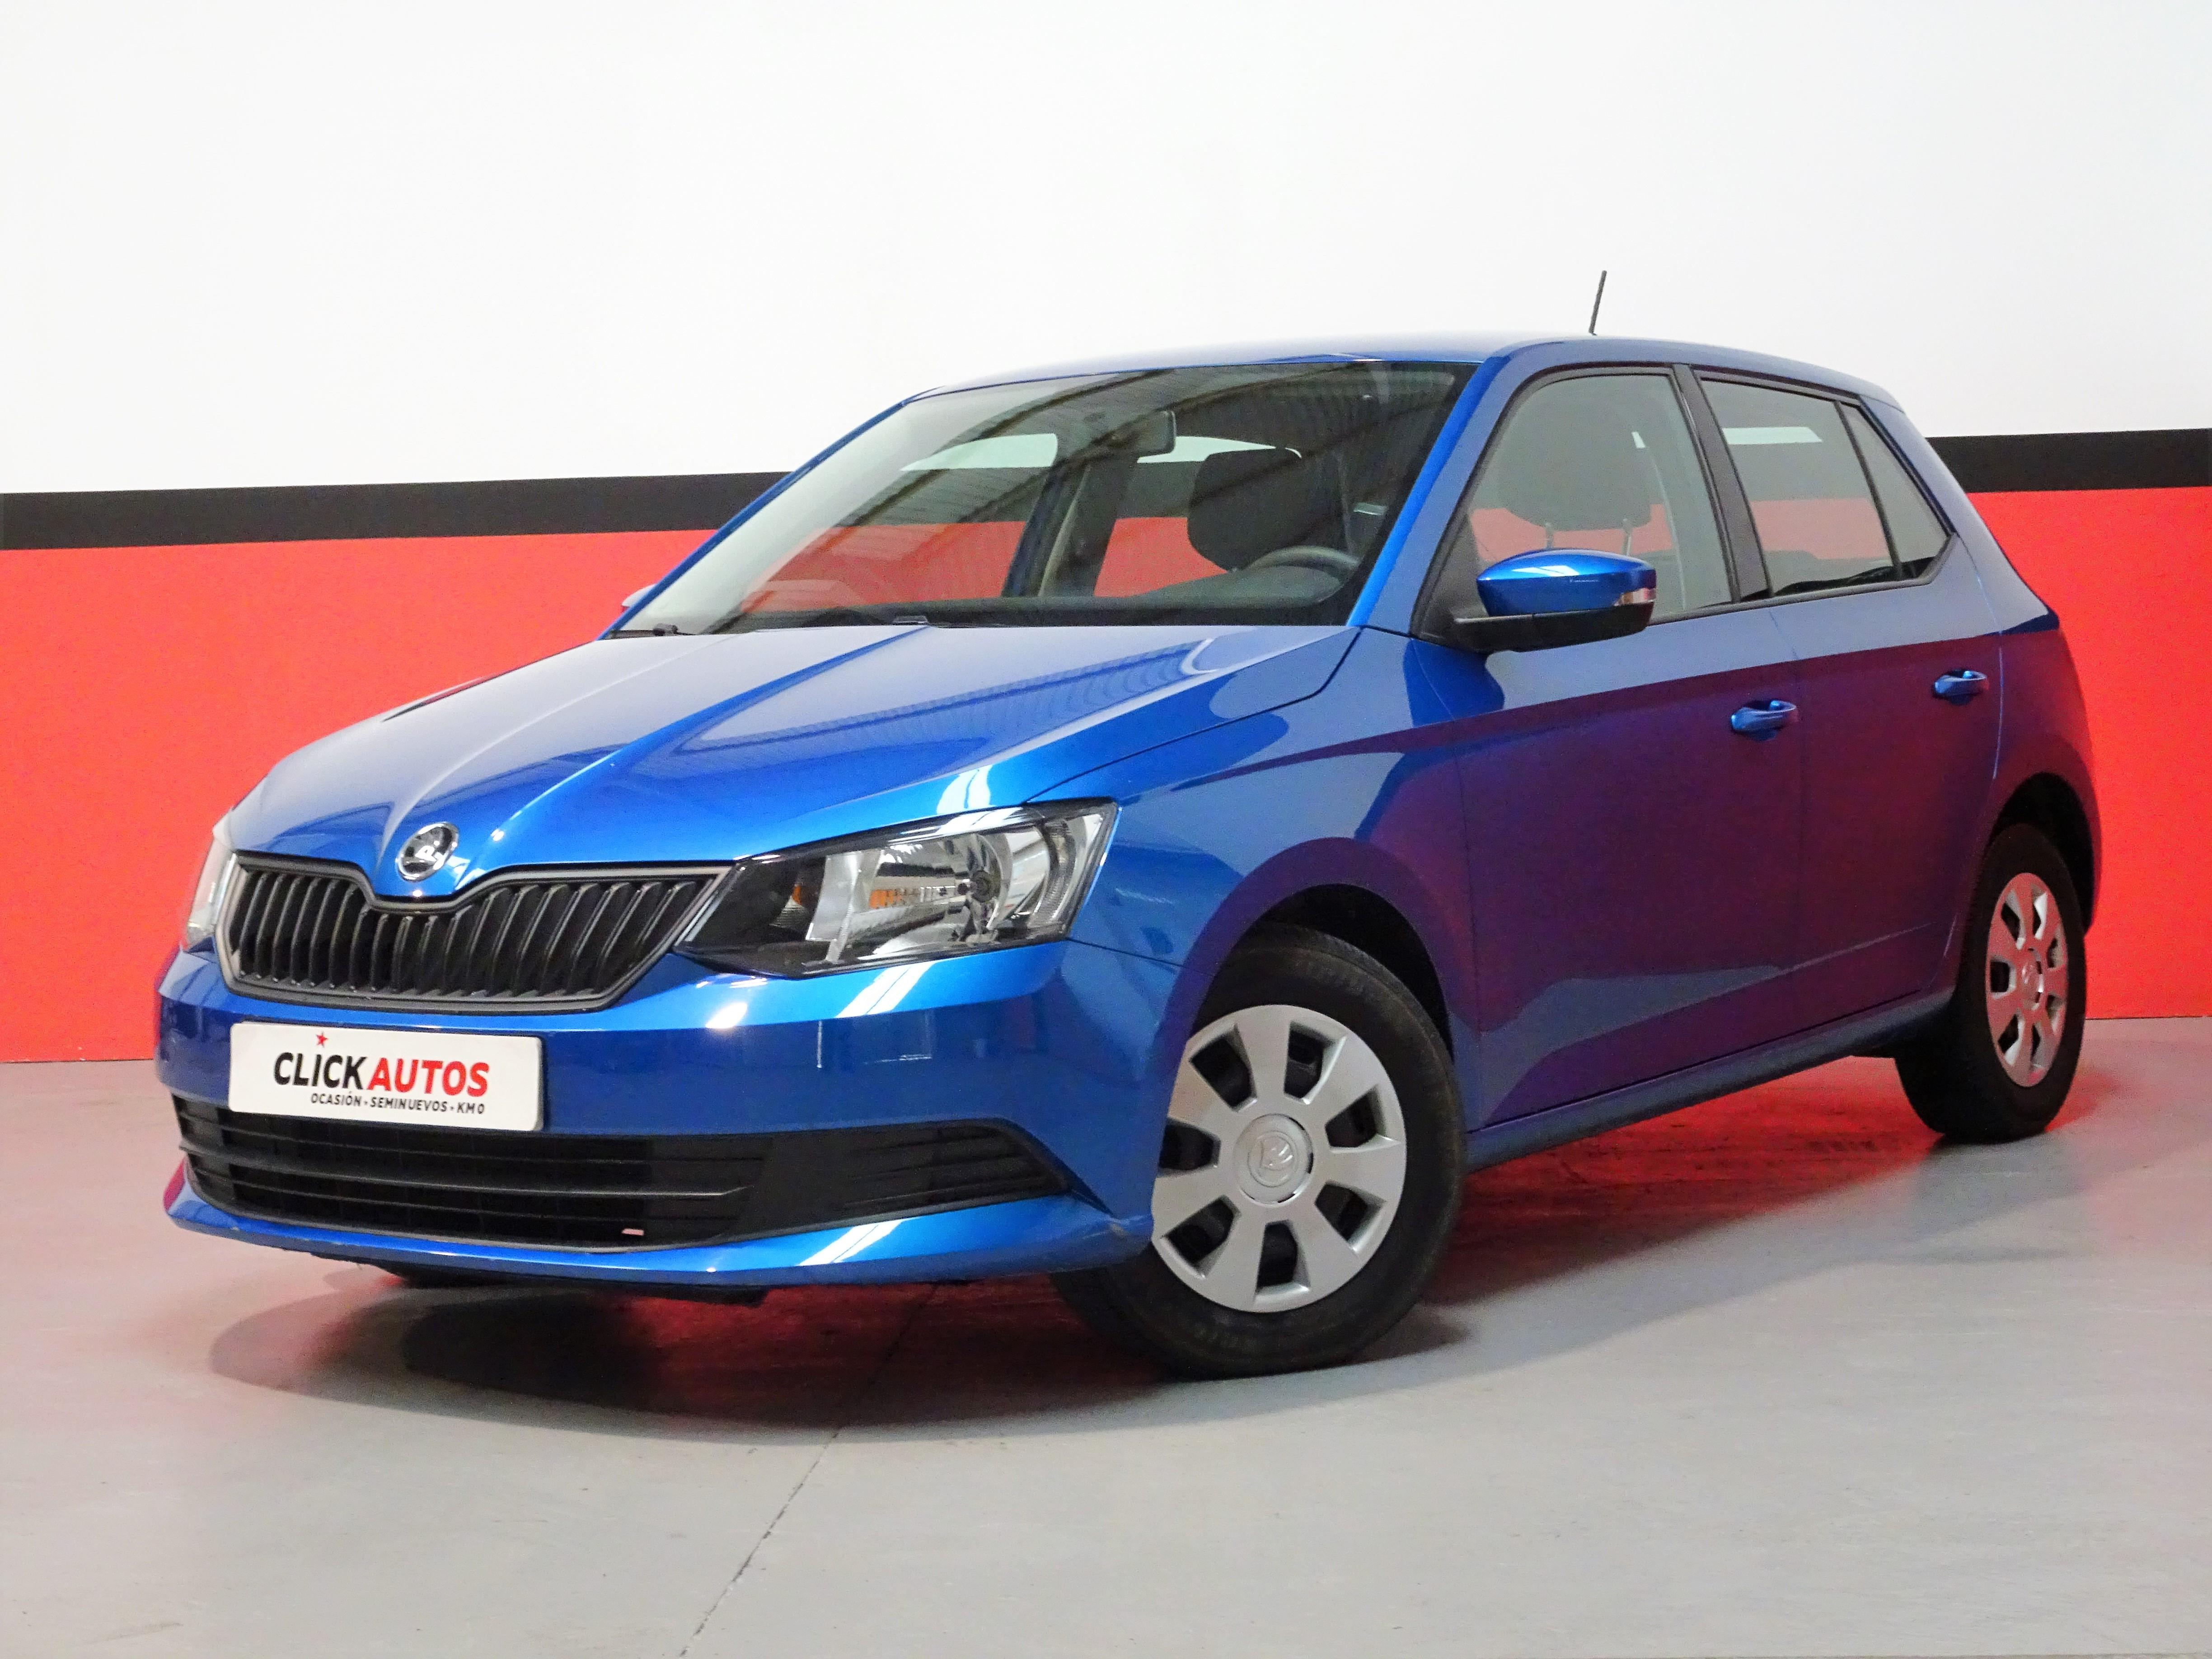 clickautos ficha skoda fabia 1 0 mpi 60cv active. Black Bedroom Furniture Sets. Home Design Ideas